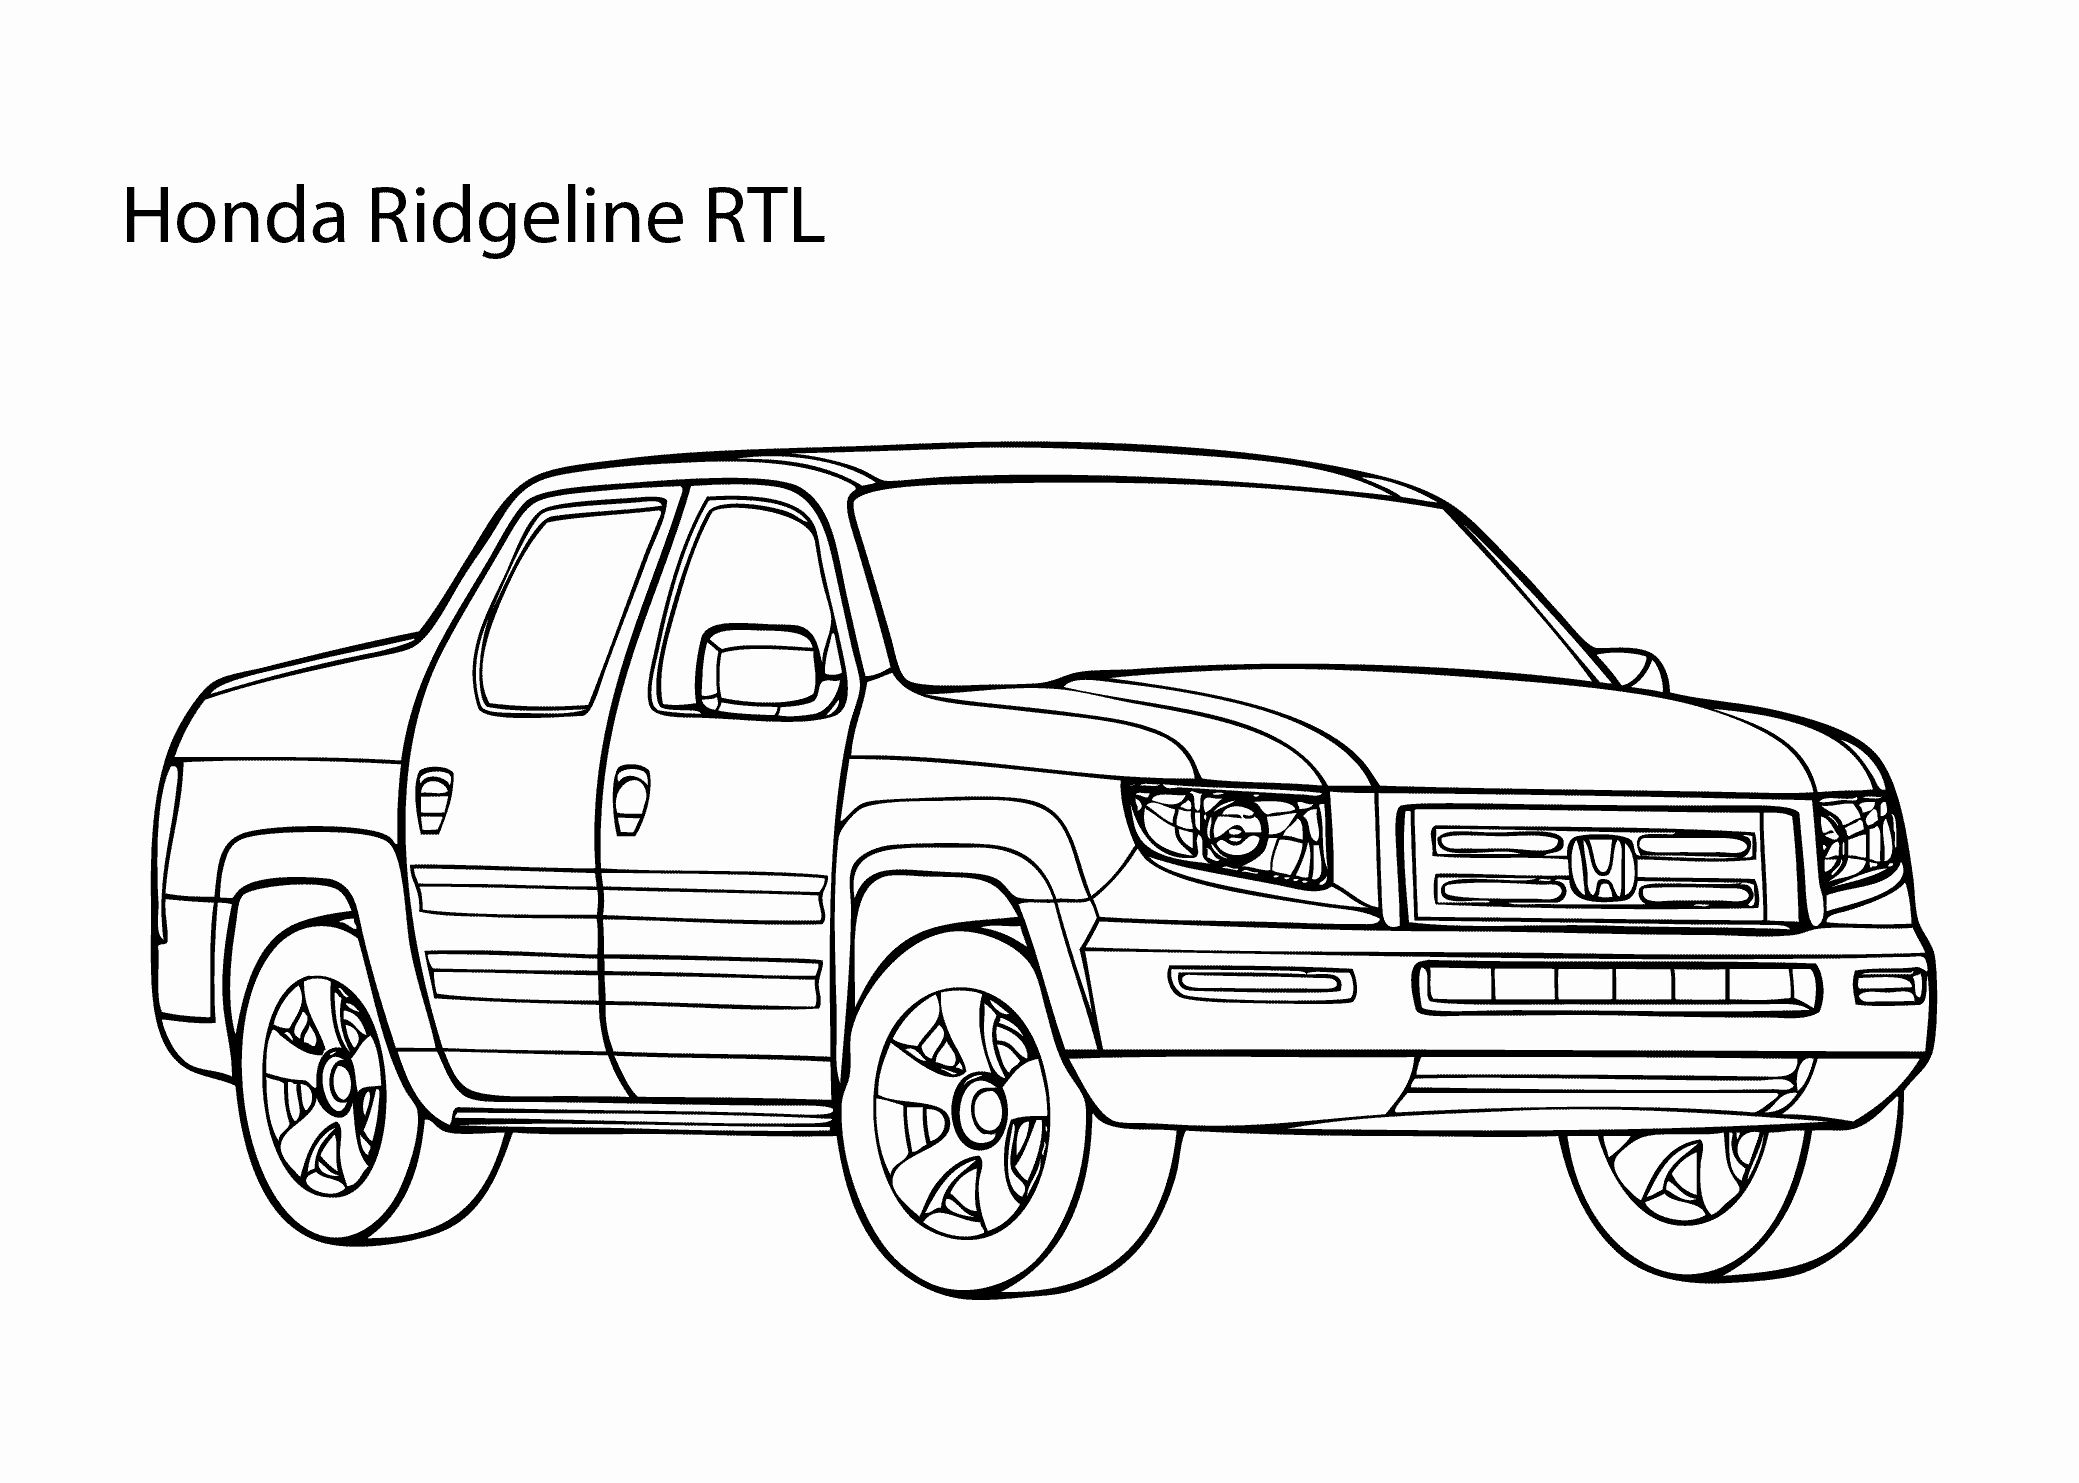 Car Drawing Book Kids Unique Super Car Honda Ridgeline Coloring Page Cool Car Printable In 2020 Truck Coloring Pages Honda Ridgeline Cars Coloring Pages